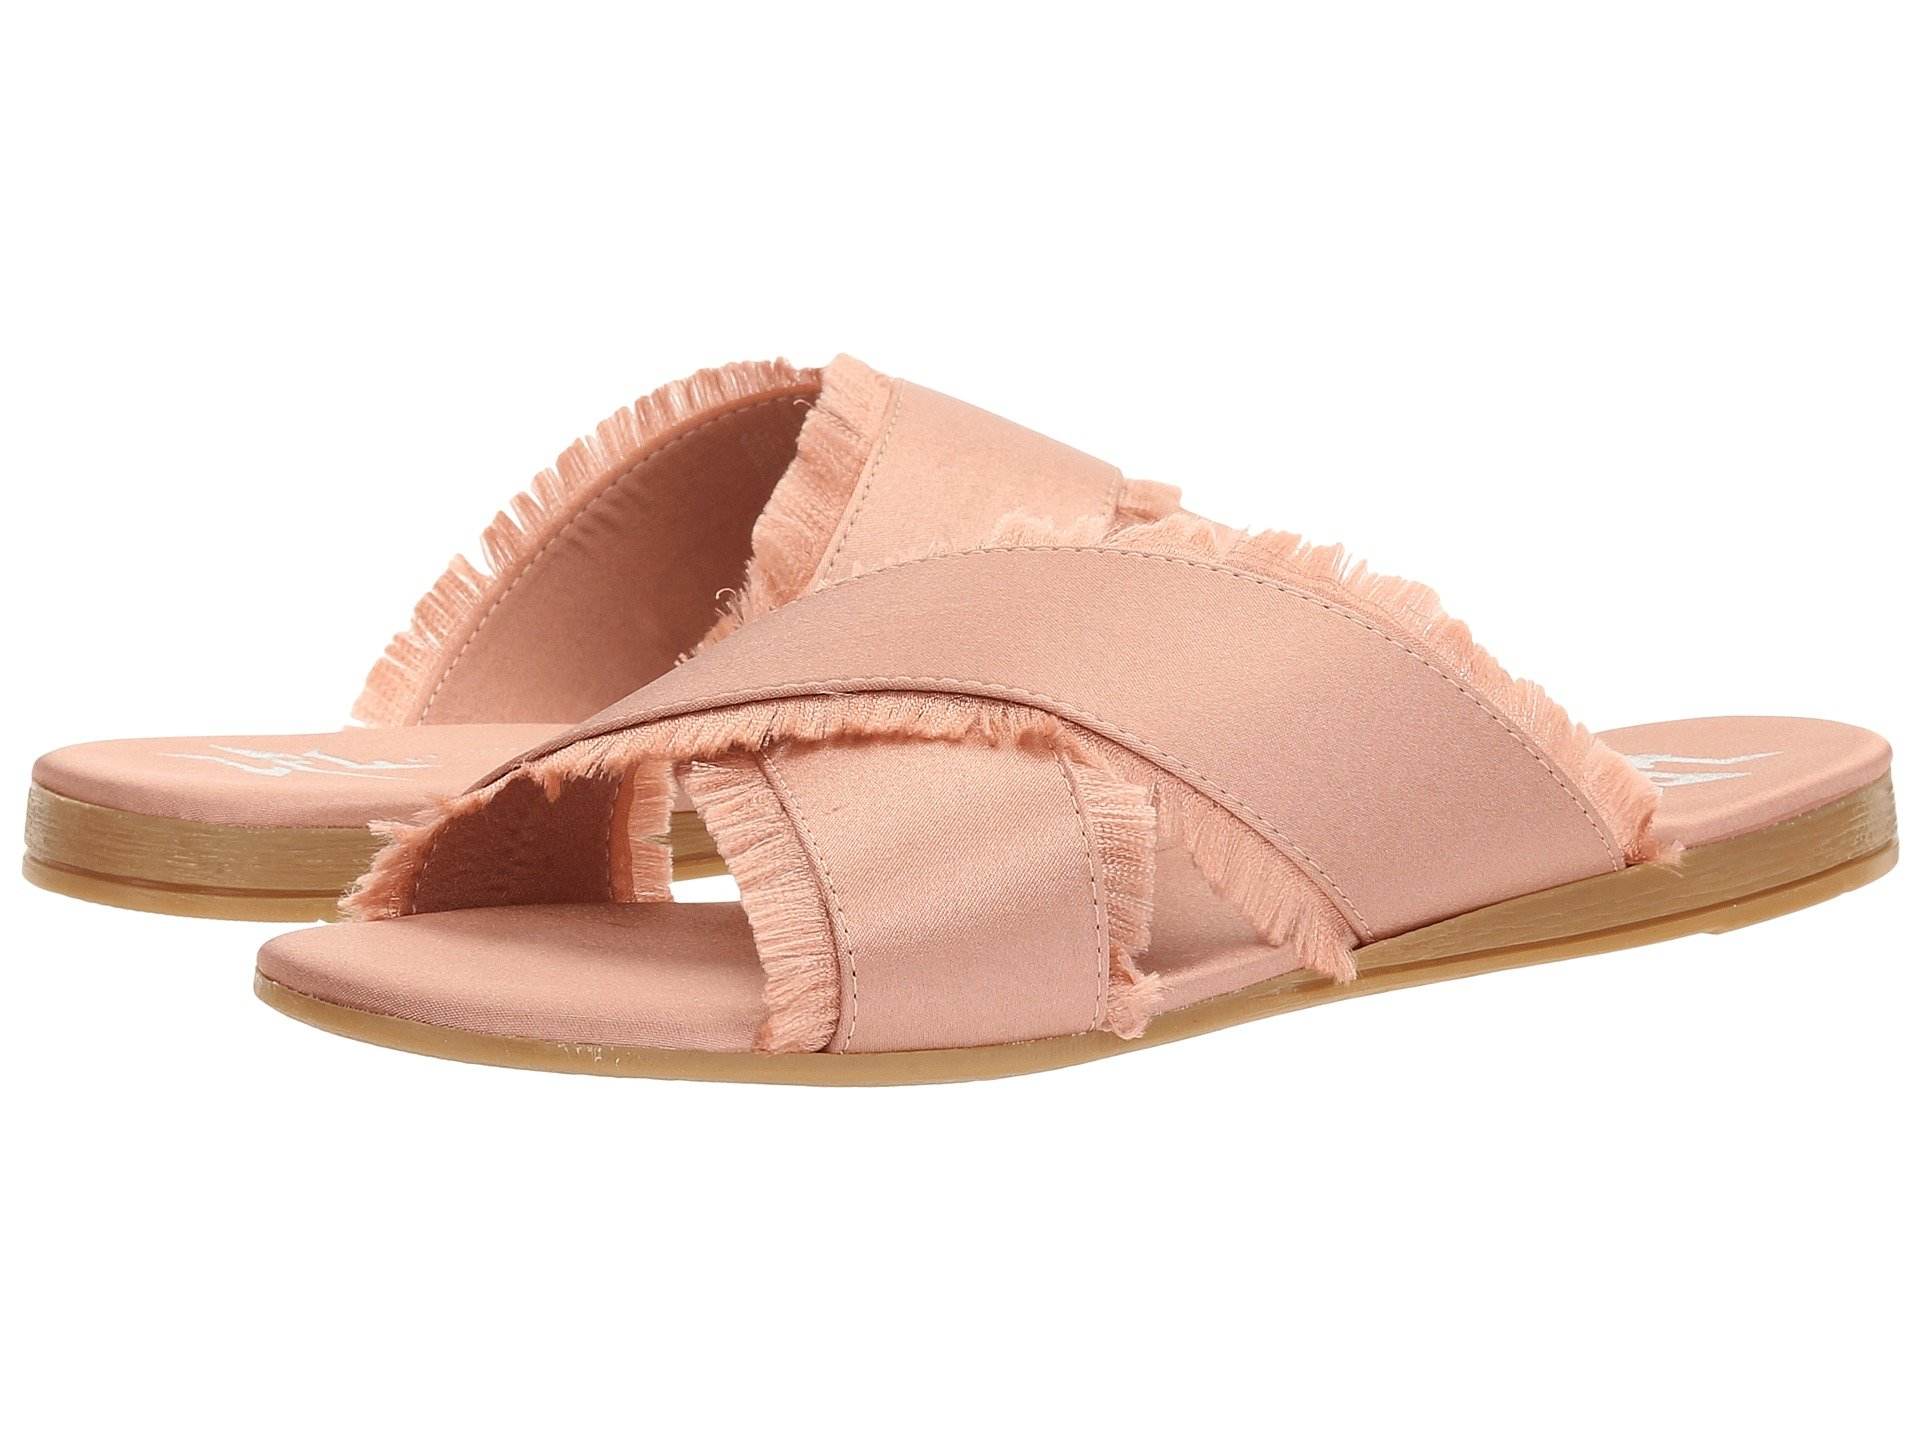 LFL BY LUST FOR LIFE Frill, Blush